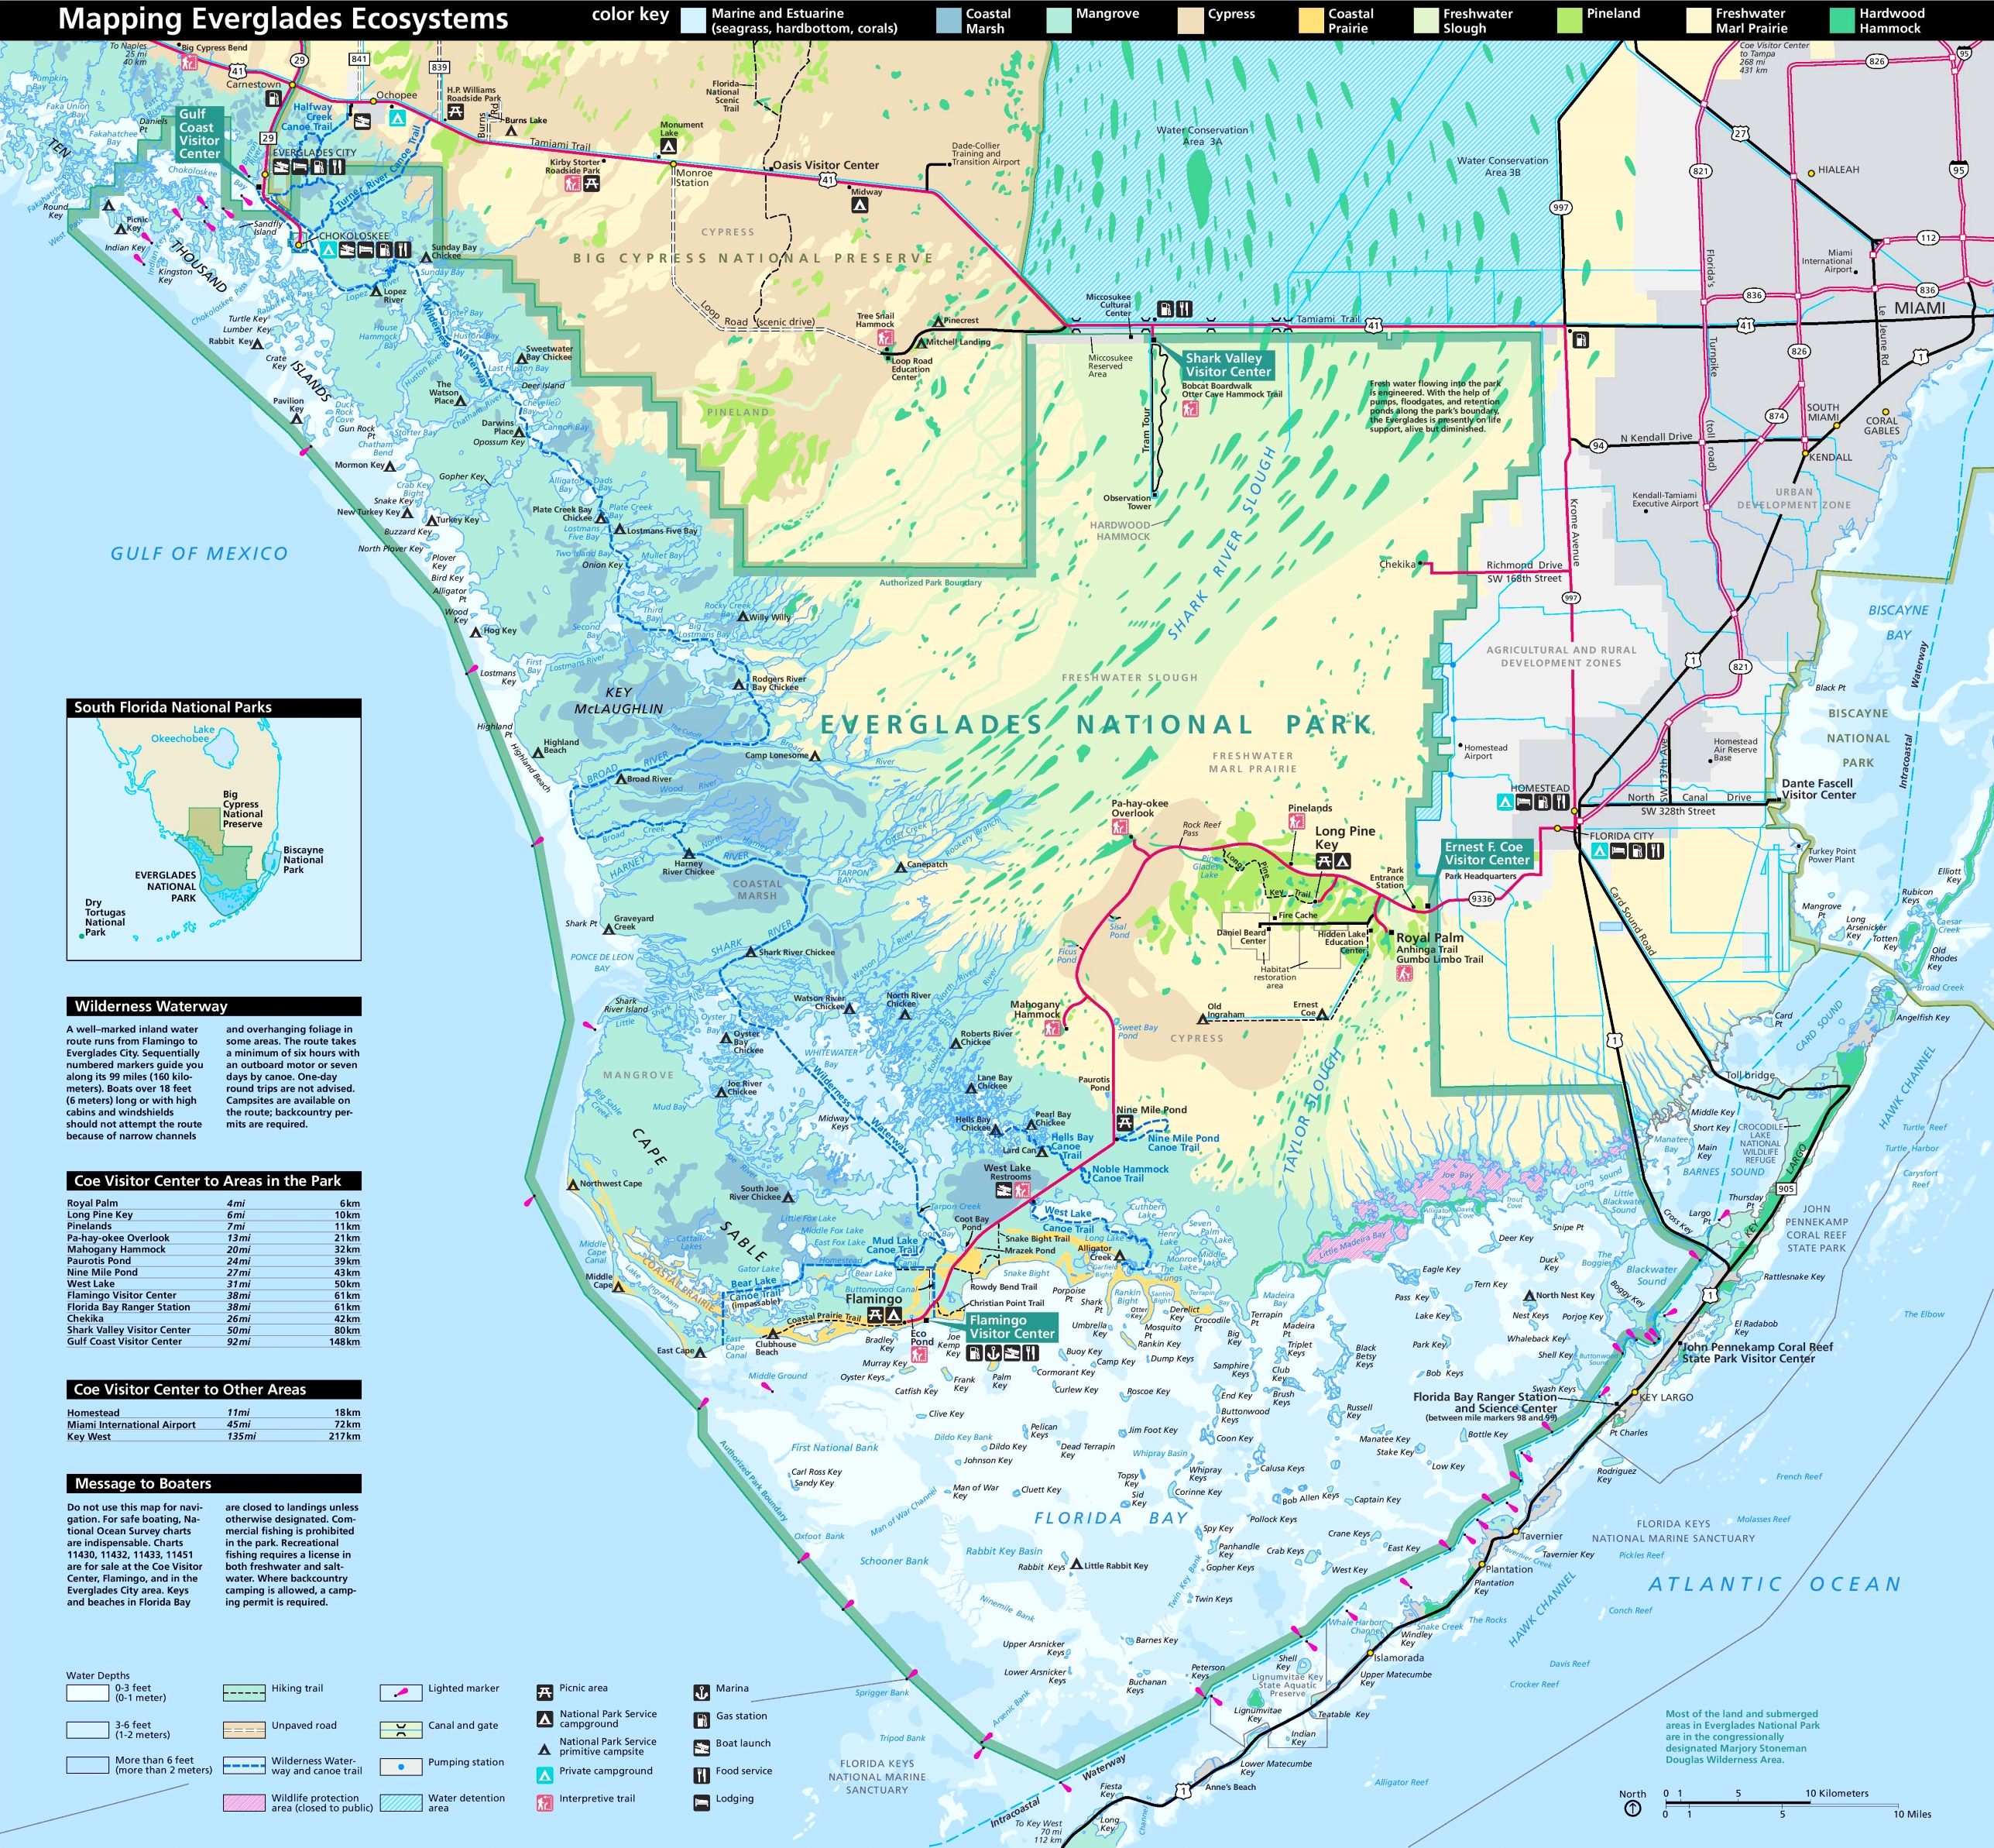 Detailed tourist map of Everglades National Park